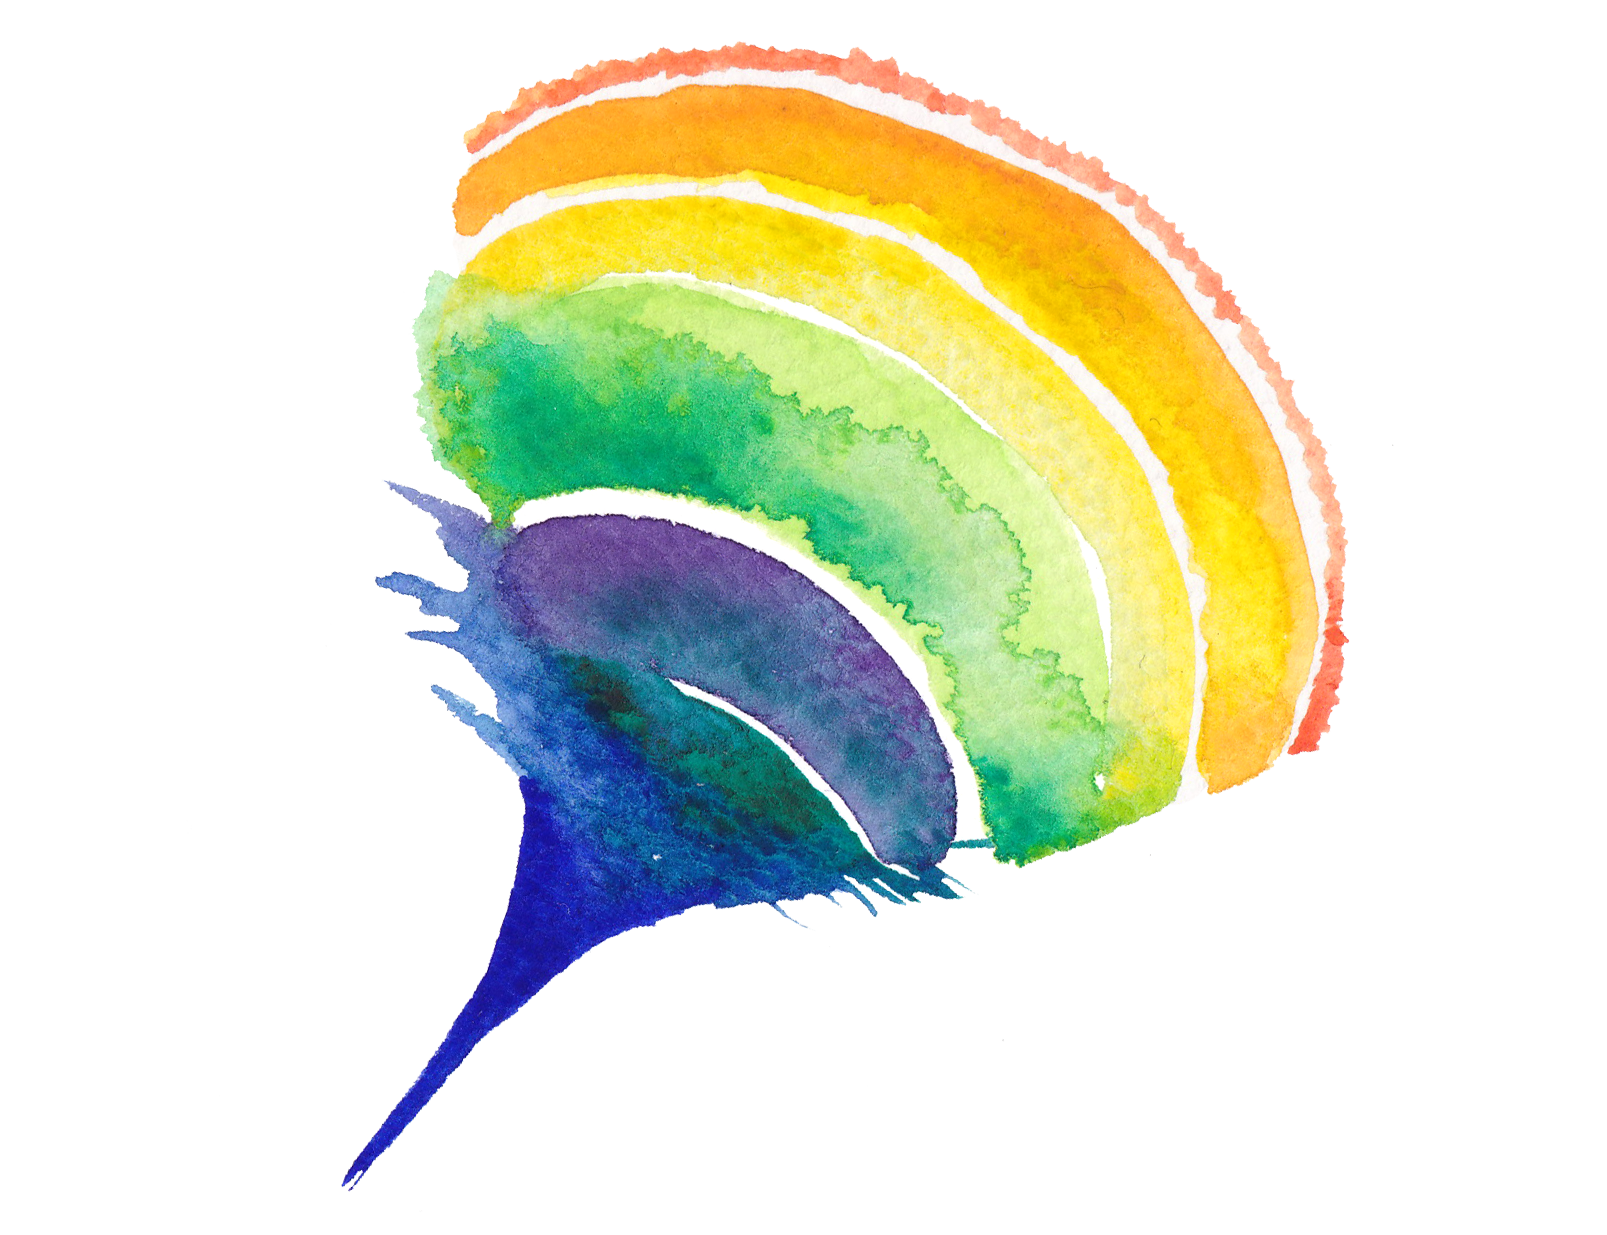 Rainbow watercolor png. Creative circle painting transprent